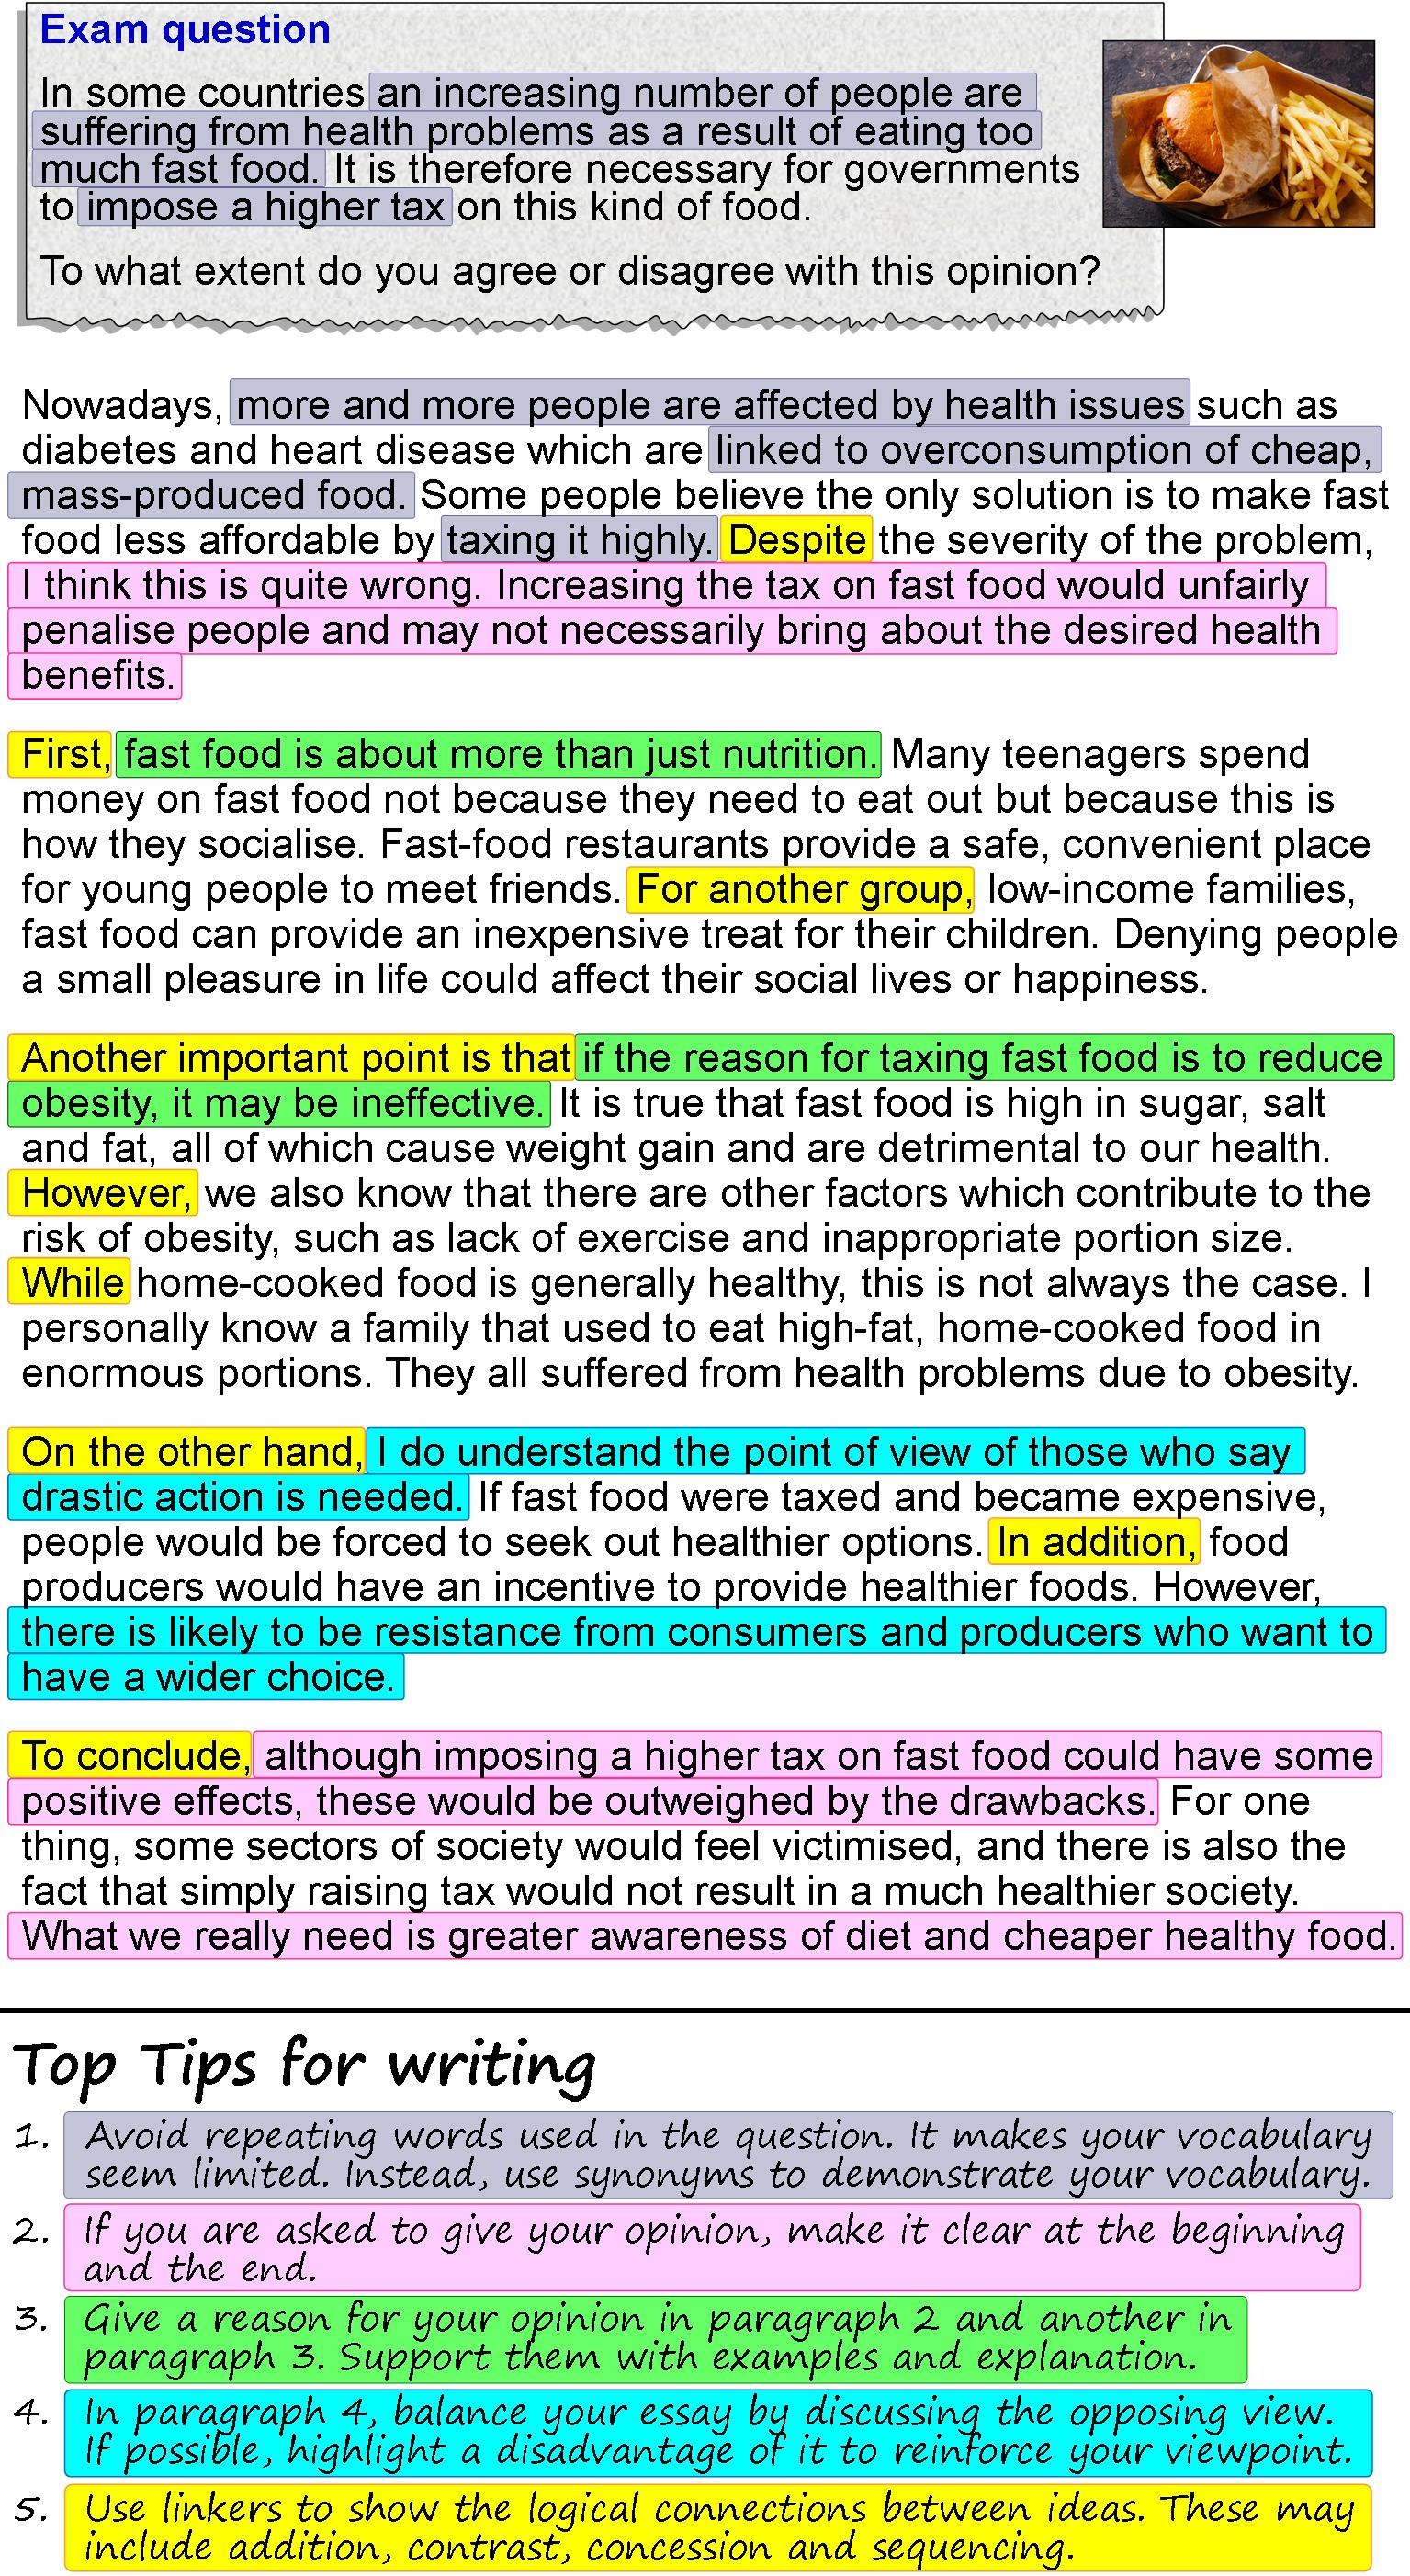 001 An Opinion Essay About Fast 4 Example Stunning Food Topics Argumentative Introduction Titles Full